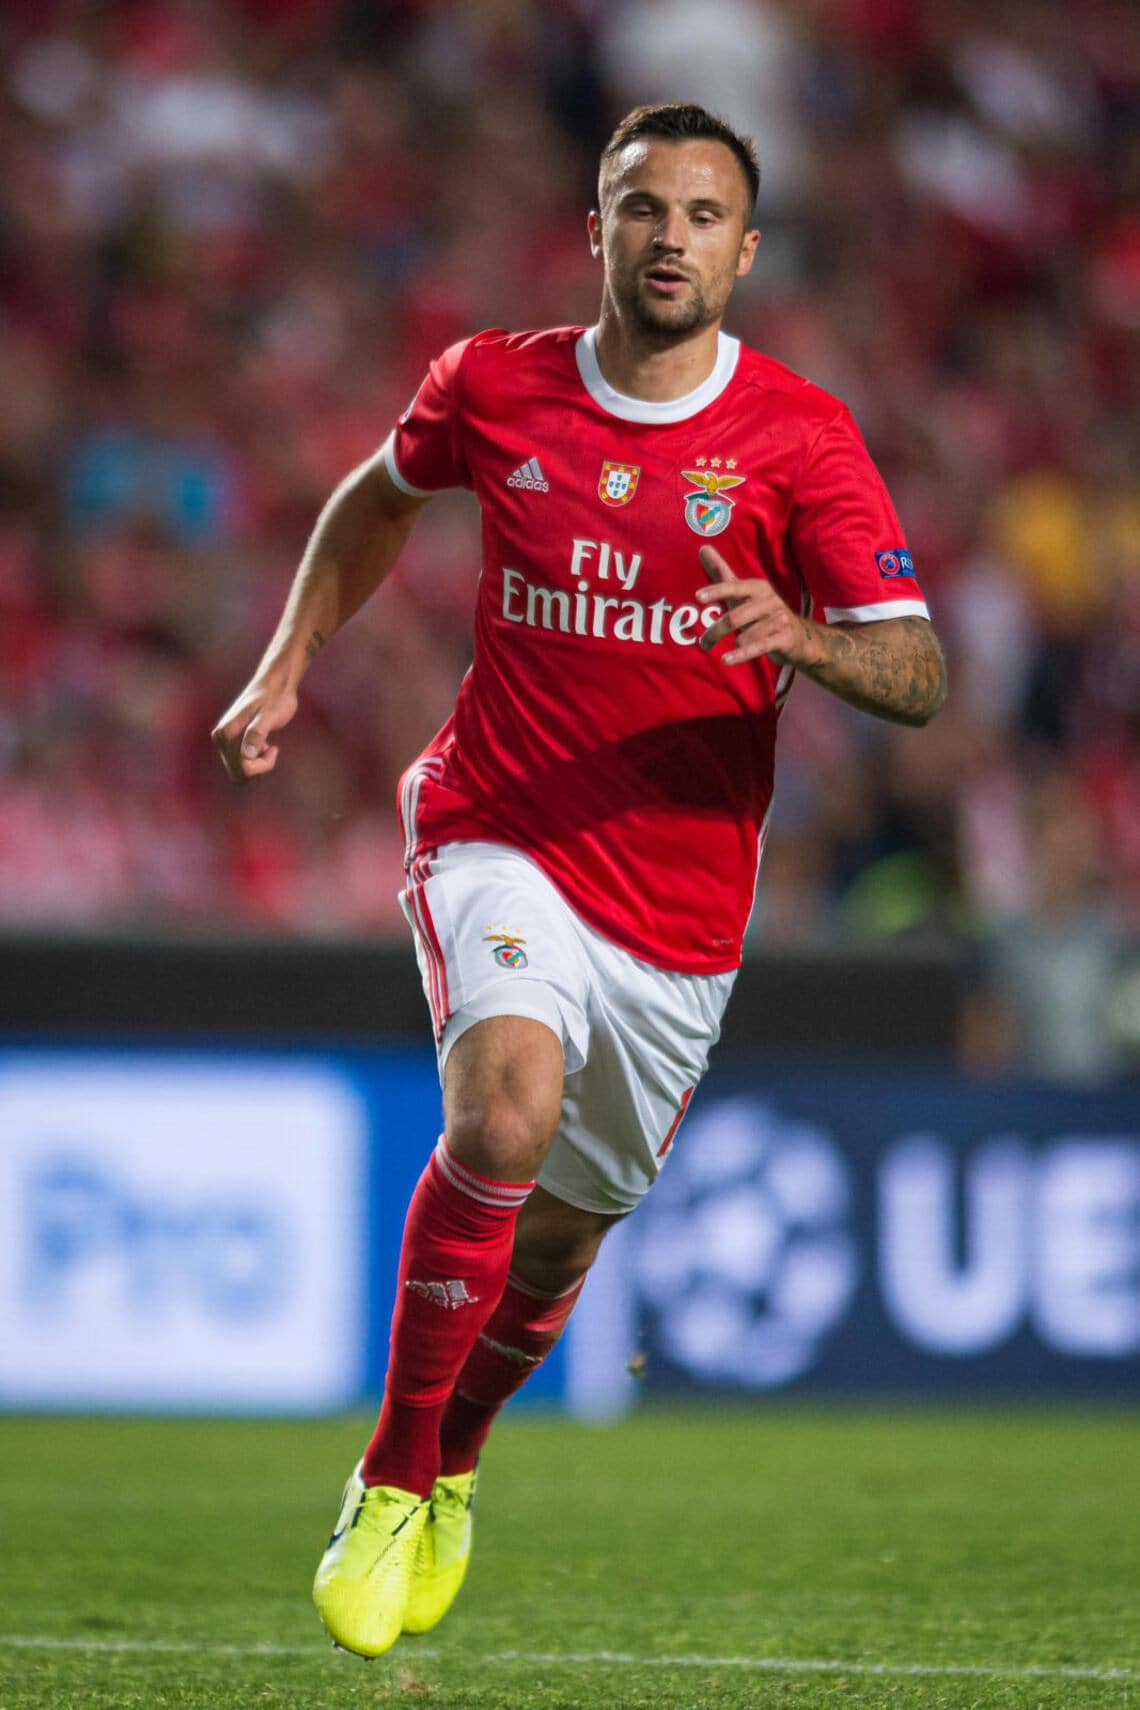 LISBON, PORTUGAL - SEPTEMBER 17: Haris Seferovic of SL Benfica during the UEFA Champions League group G match between SL Benfica and RB Leipzig at Estadio da Luz on September 17, 2019 in Lisbon, Portugal. (Photo by TF-Images/Getty Images)